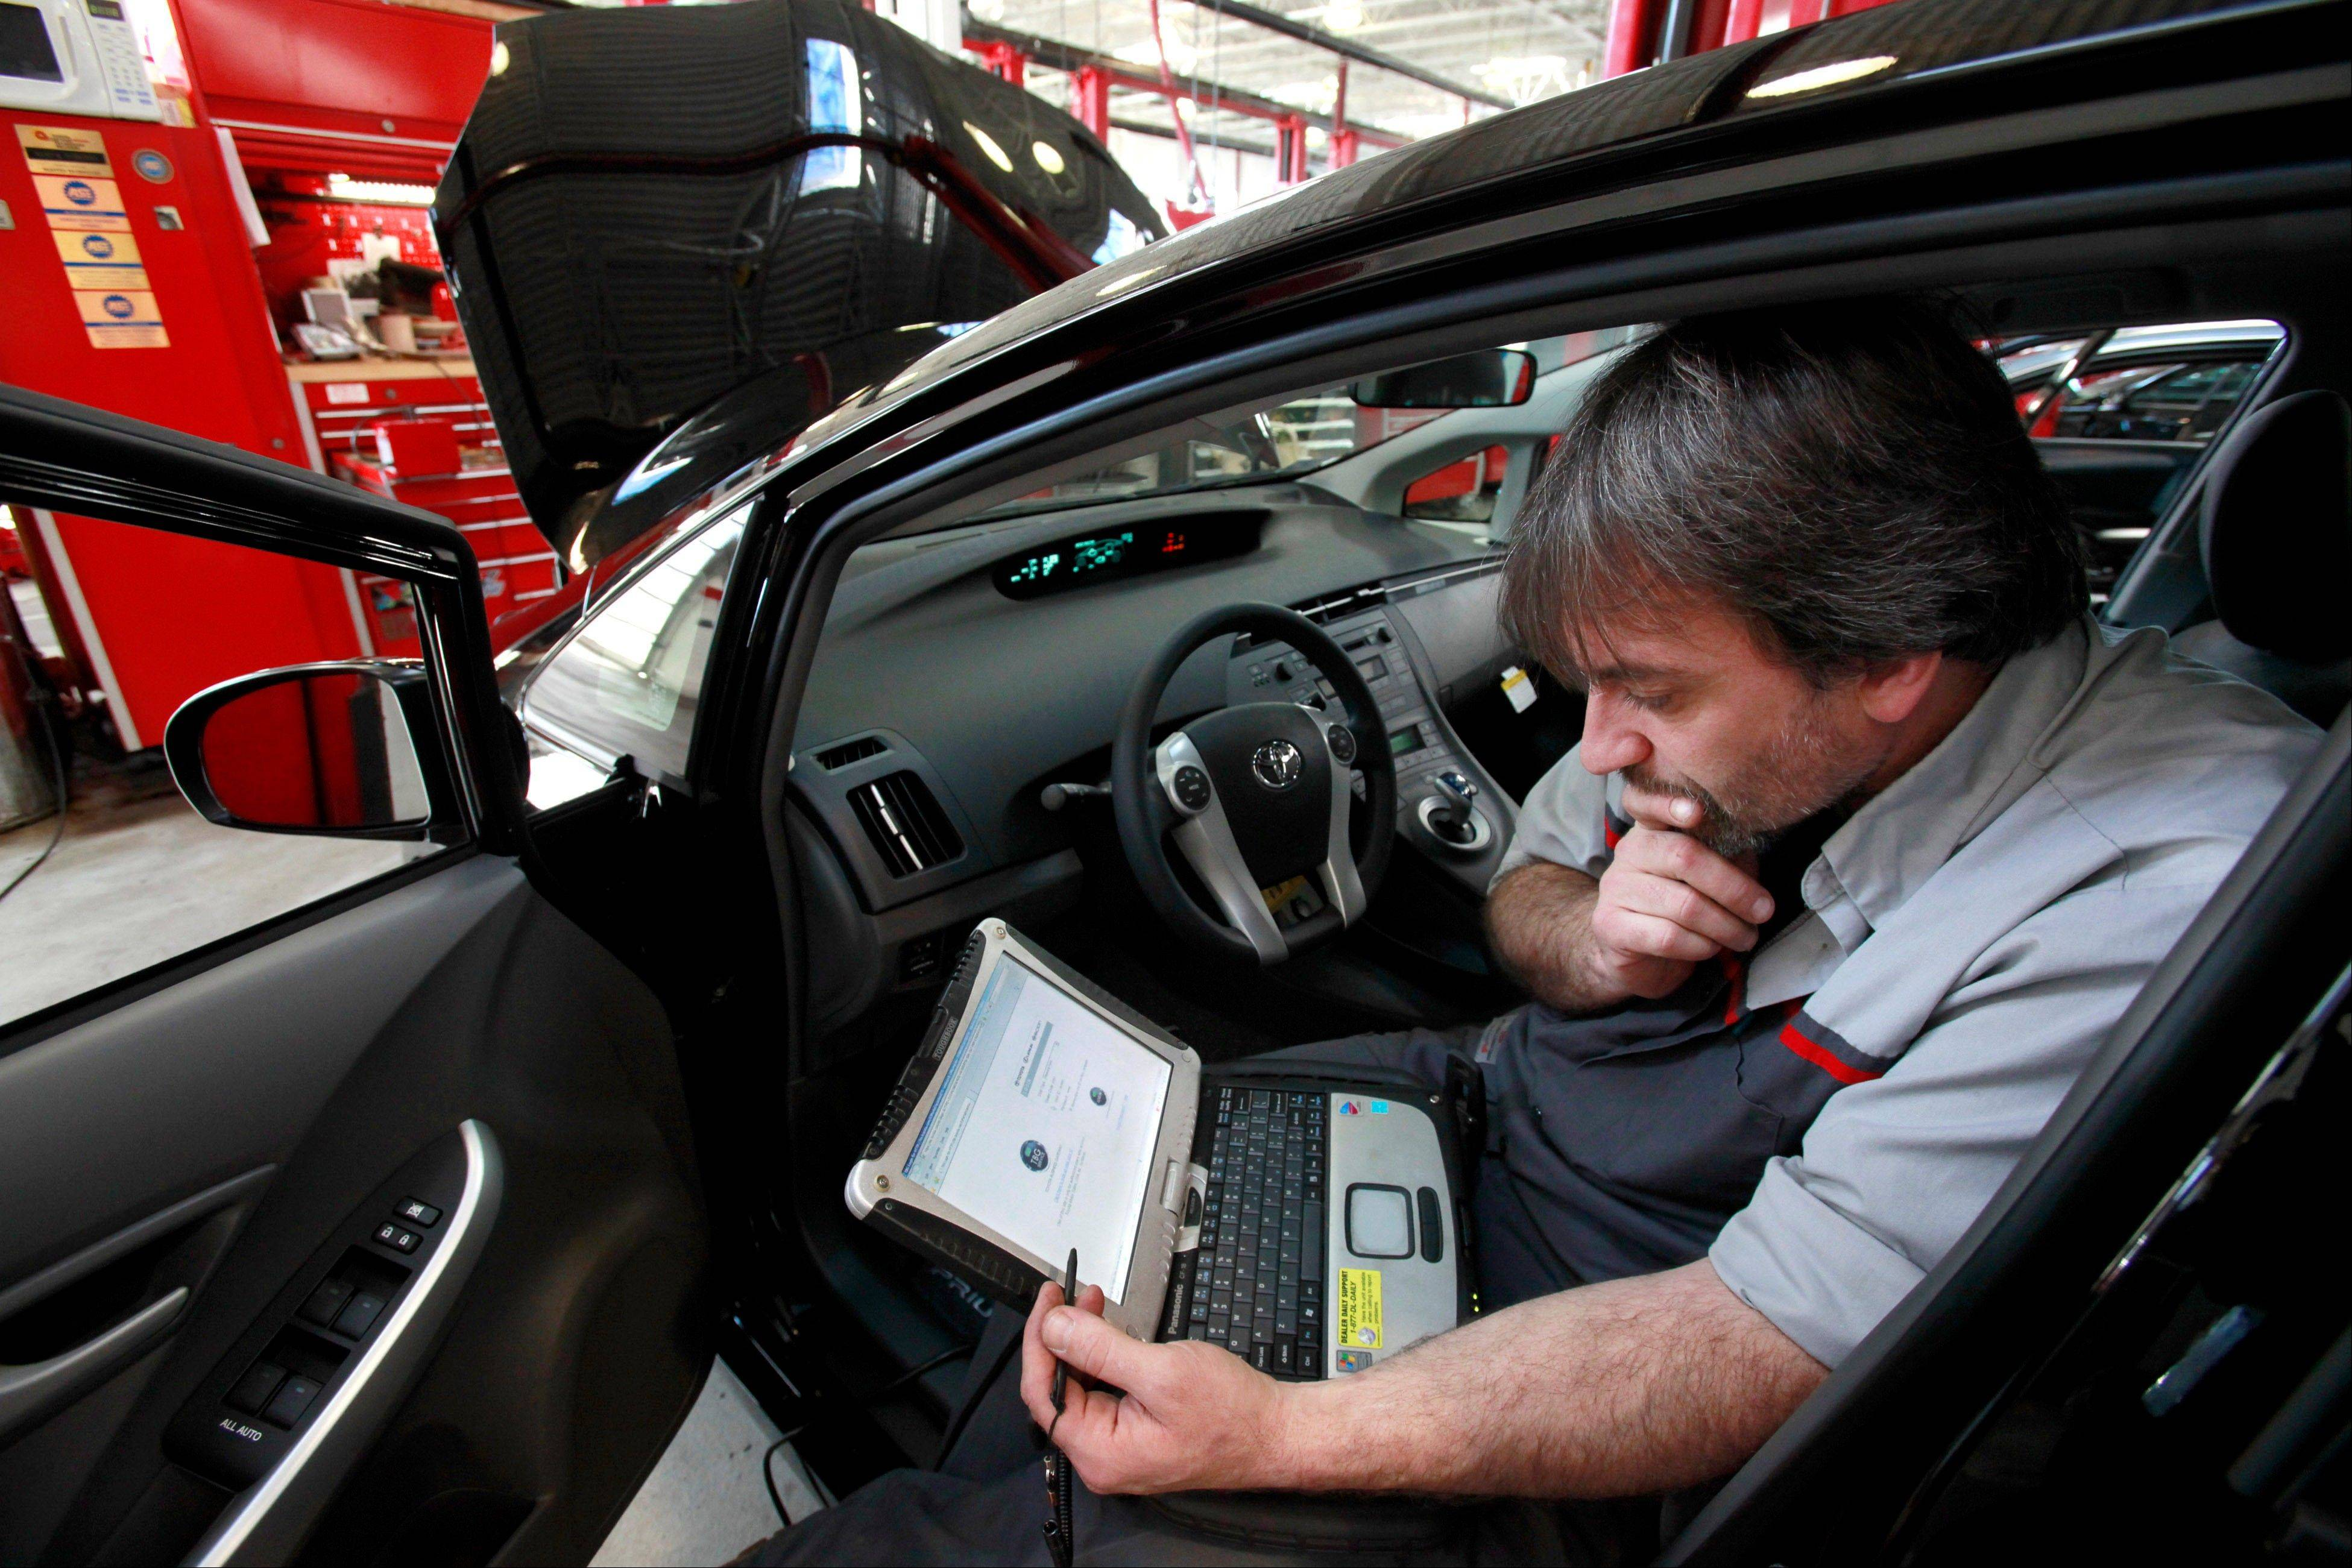 Master diagnostic technician Kurt Juergens uses a laptop computer to diagnose and repair the brake system on a 2010 Toyota Prius in the repair shop of a Toyota dealership in Norwood, Mass.